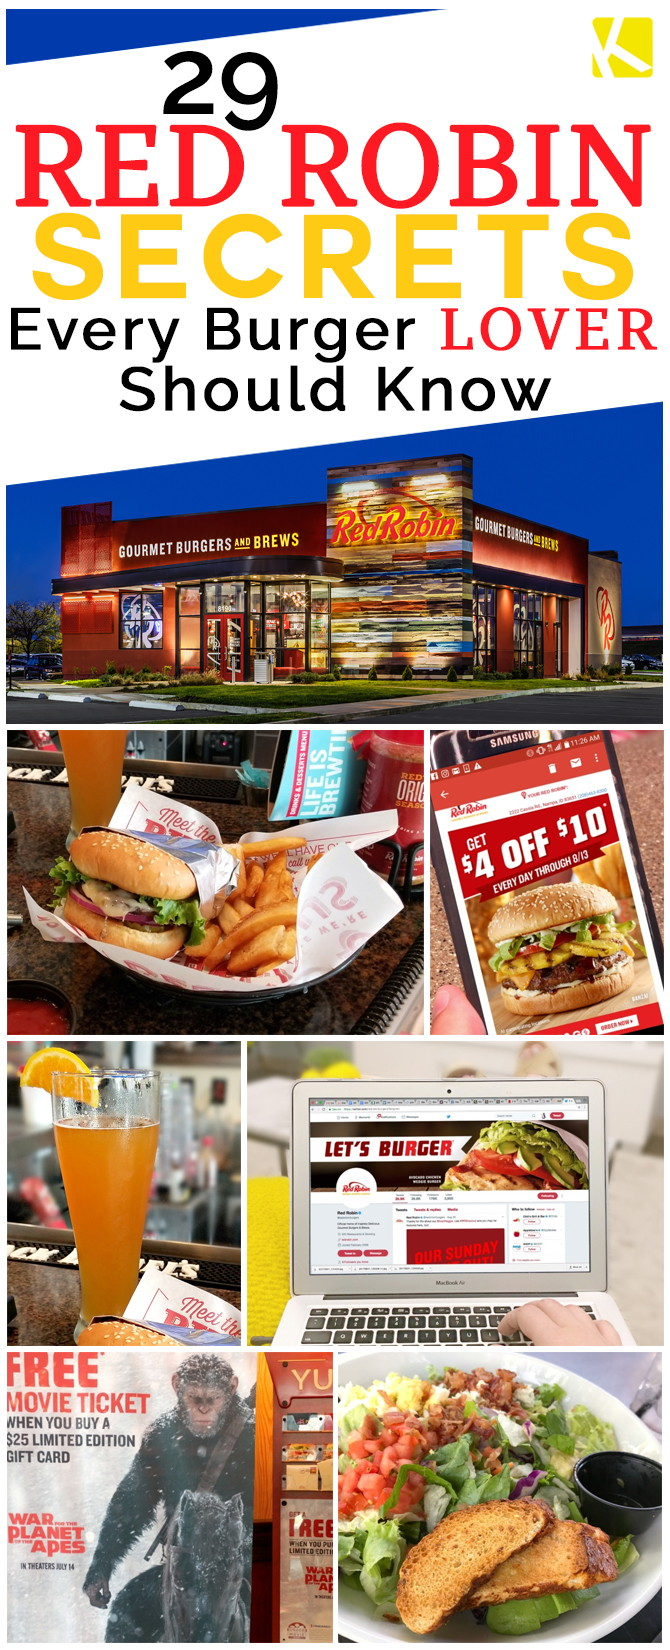 29 Red Robin Secrets Every Burger Lover Should Know The